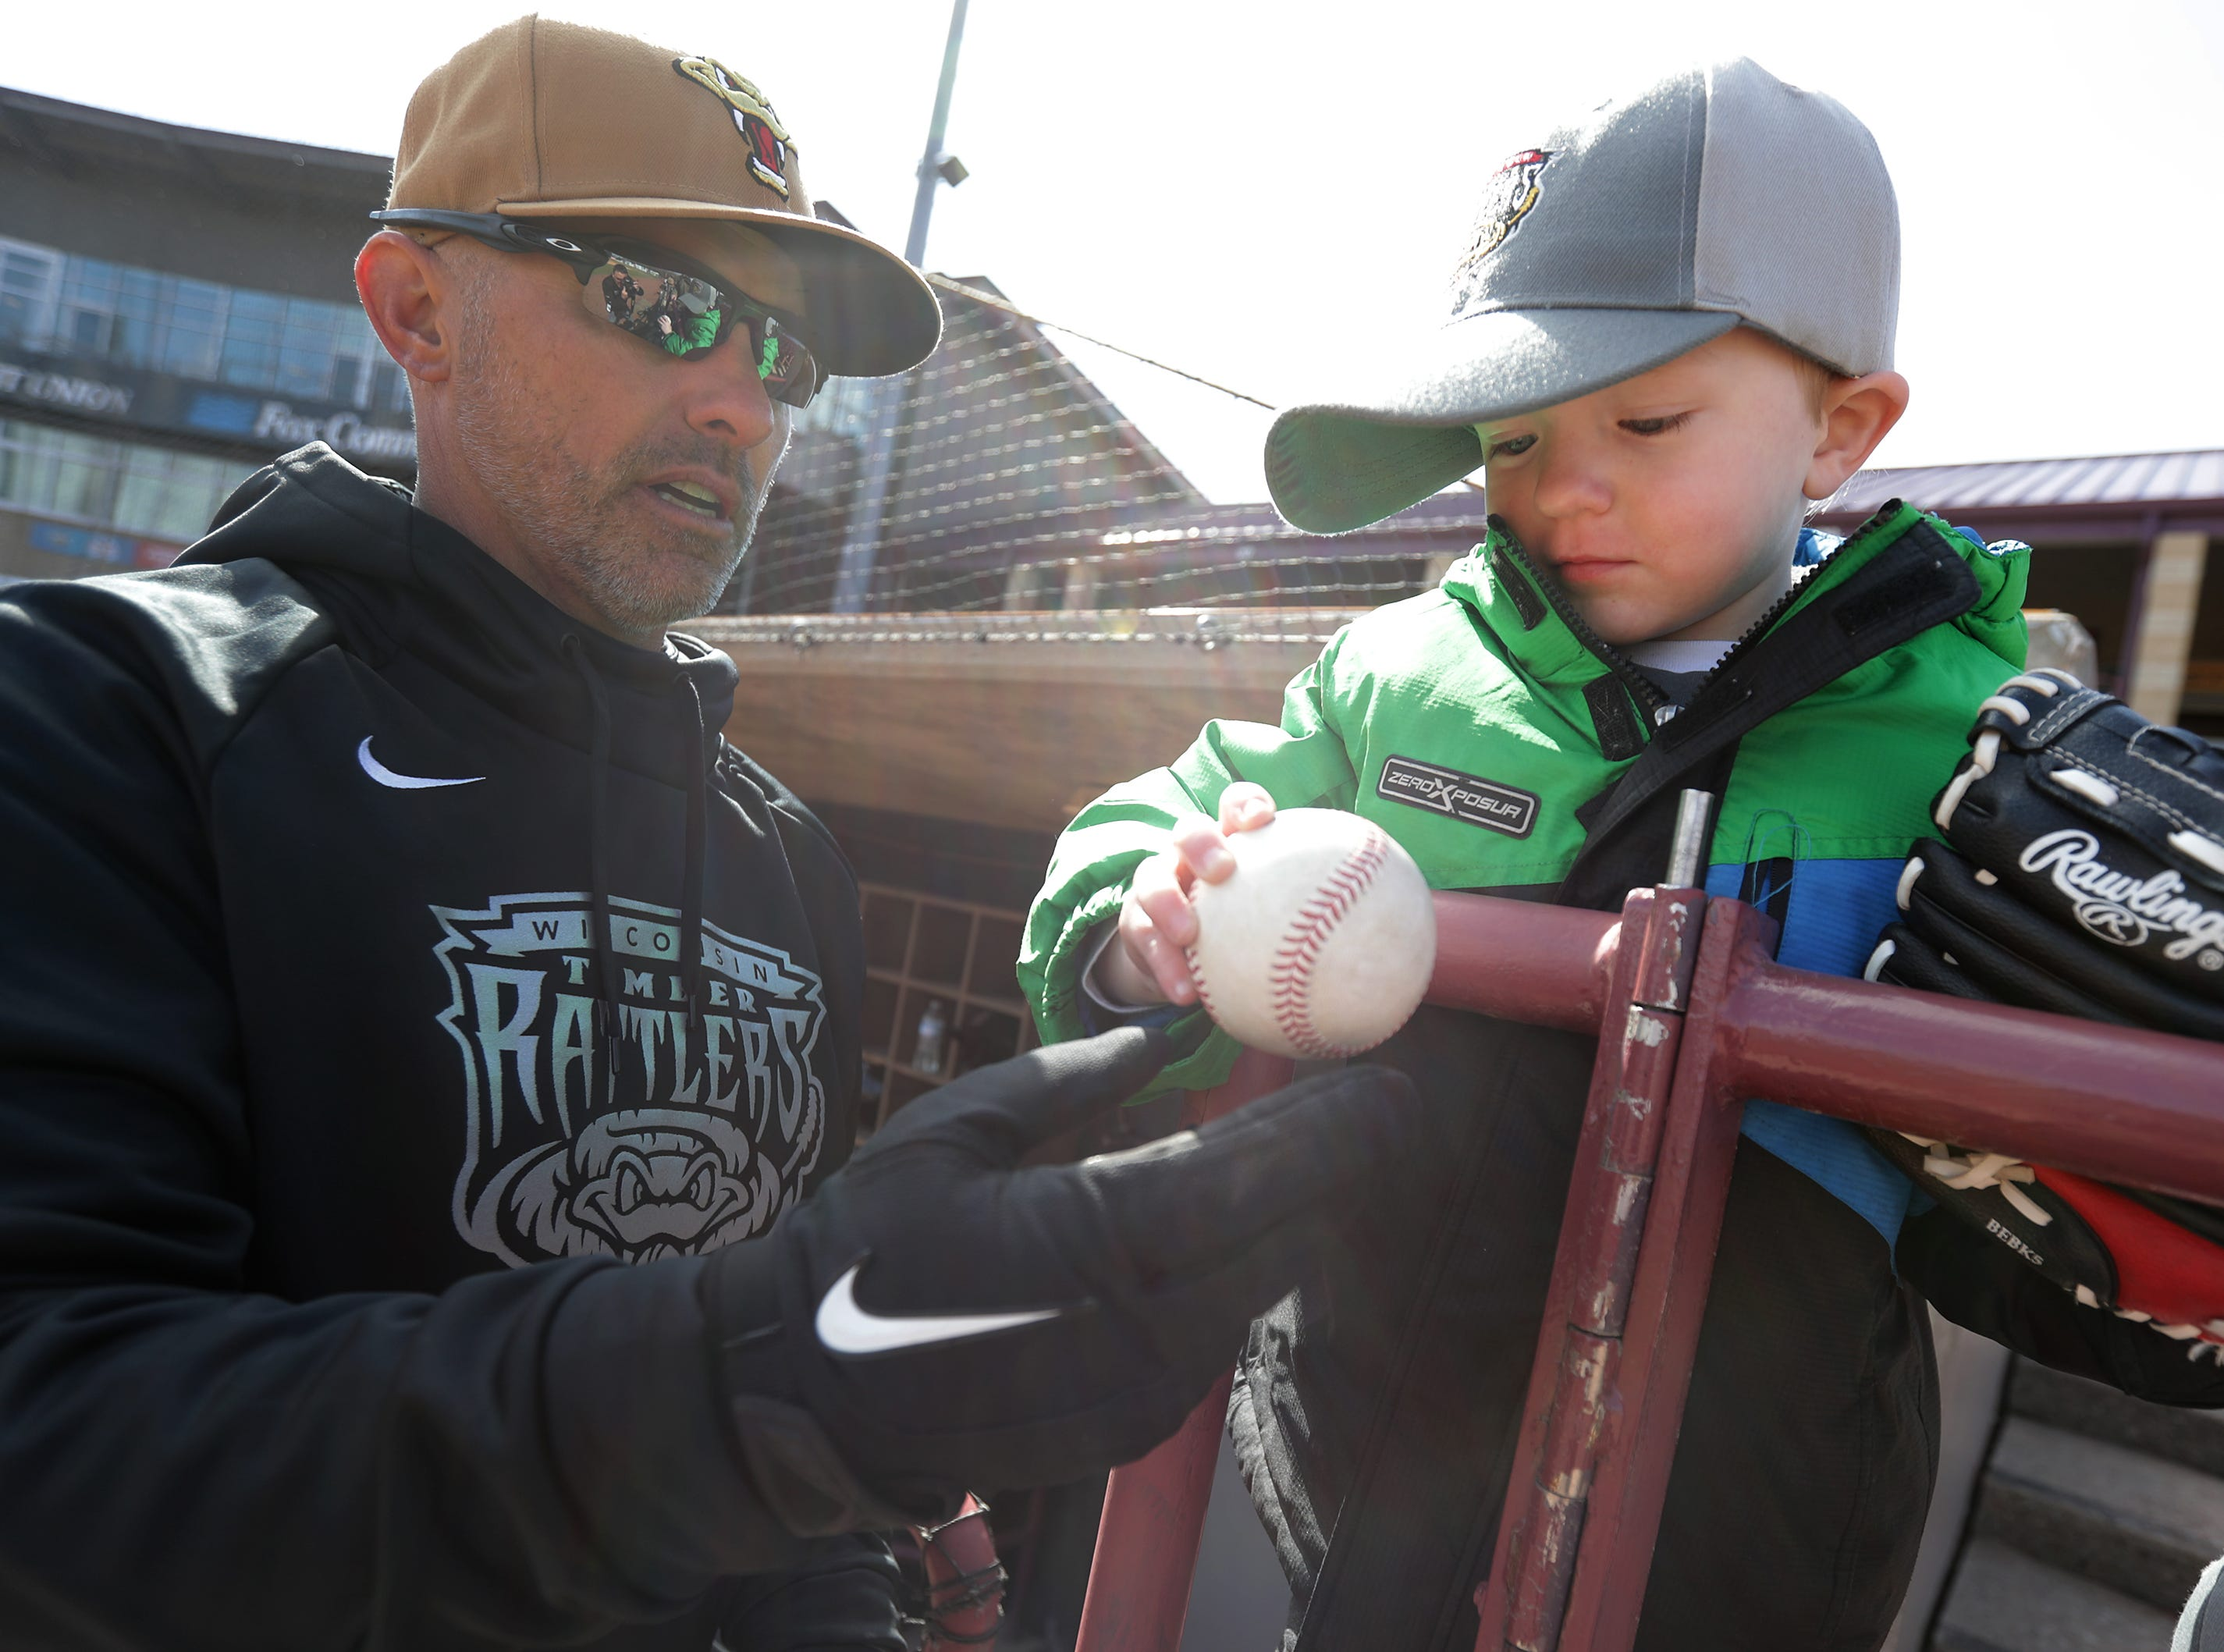 The Wisconsin Timber Rattlers' Manager Matt Erickson gives a ball to Connor Lenz during Fan Fest at Neuroscience Group Field at Fox Cities Stadium on Tuesday, April 2, 2019, in Grand Chute, Wis.Wm. Glasheen/USA TODAY NETWORK-Wisconsin.